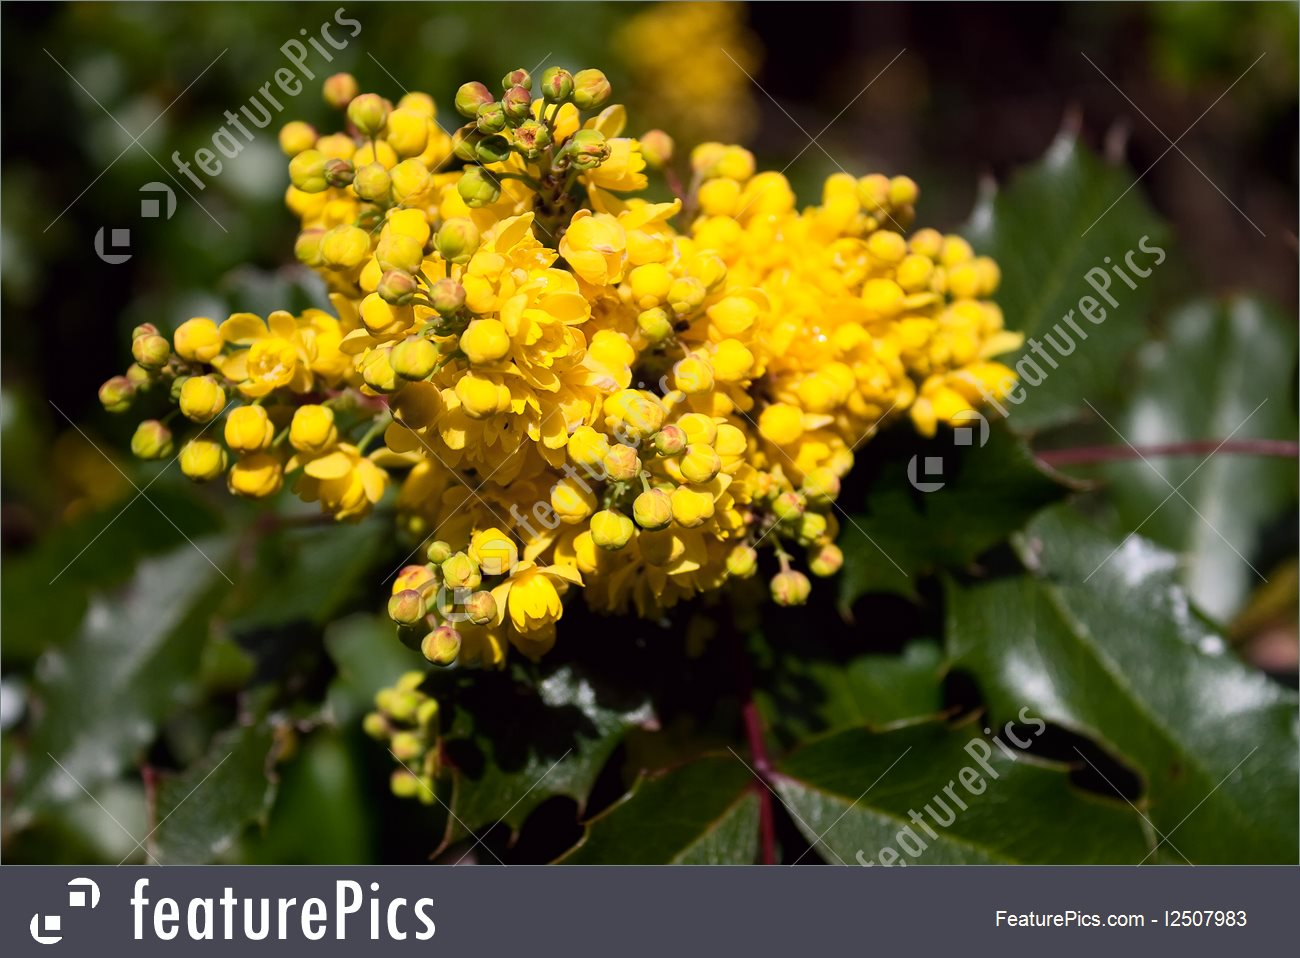 Picture Of Grape Holly With Yellow Blooms.